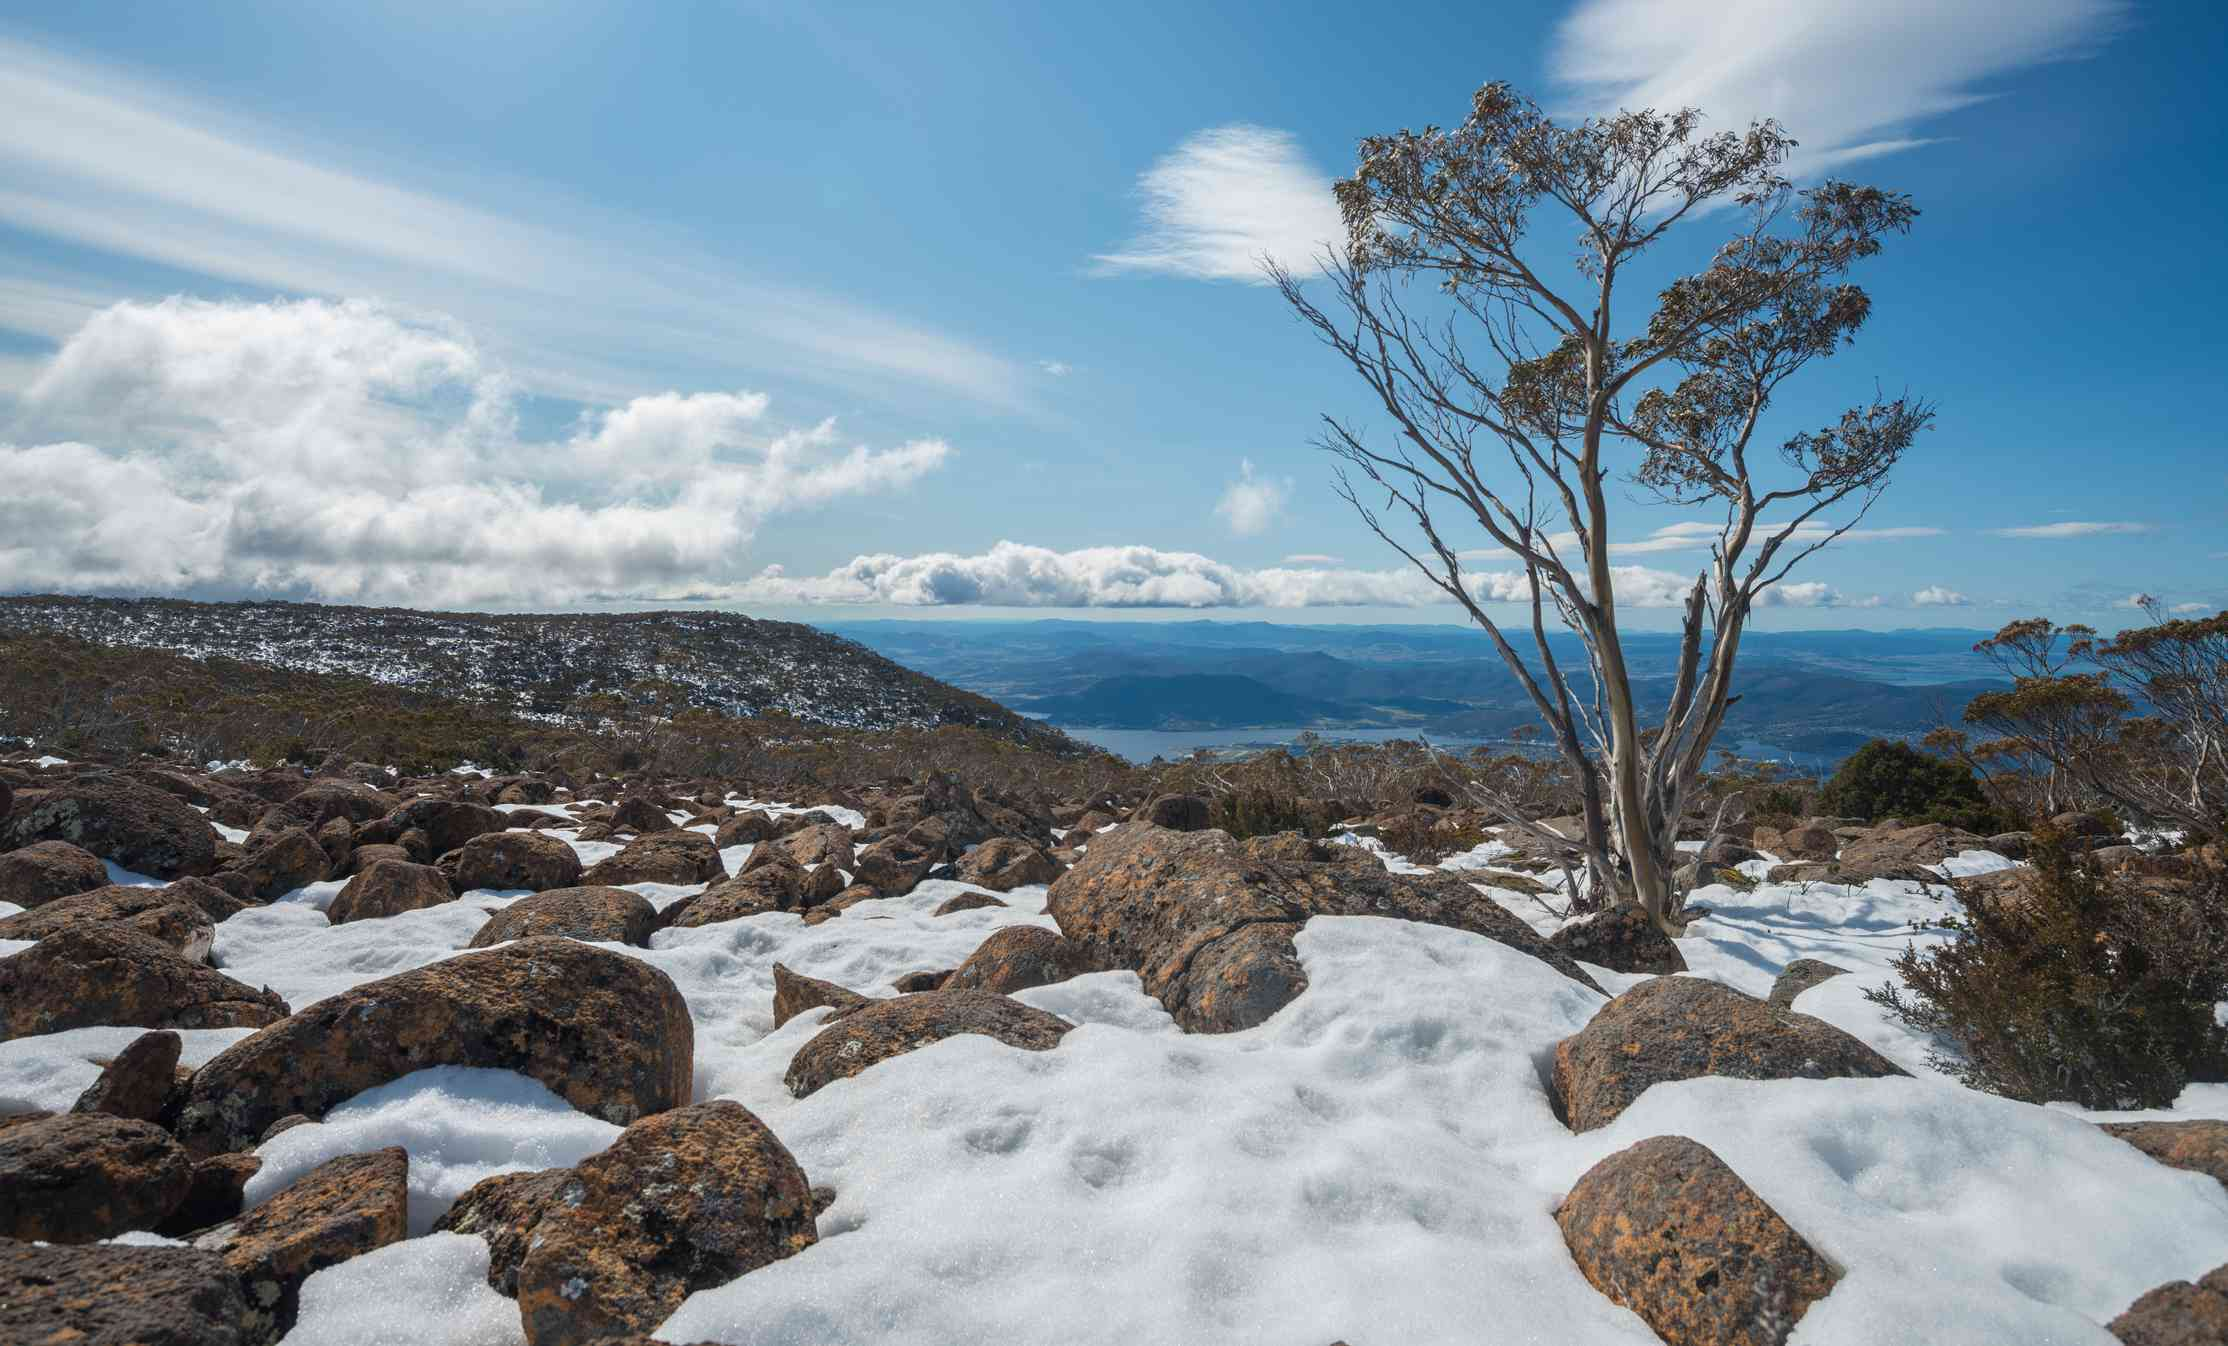 View from the top of Mount Wellington covered partially in white snow and rocks with a single tree under a sunny blue sky with a few white clouds